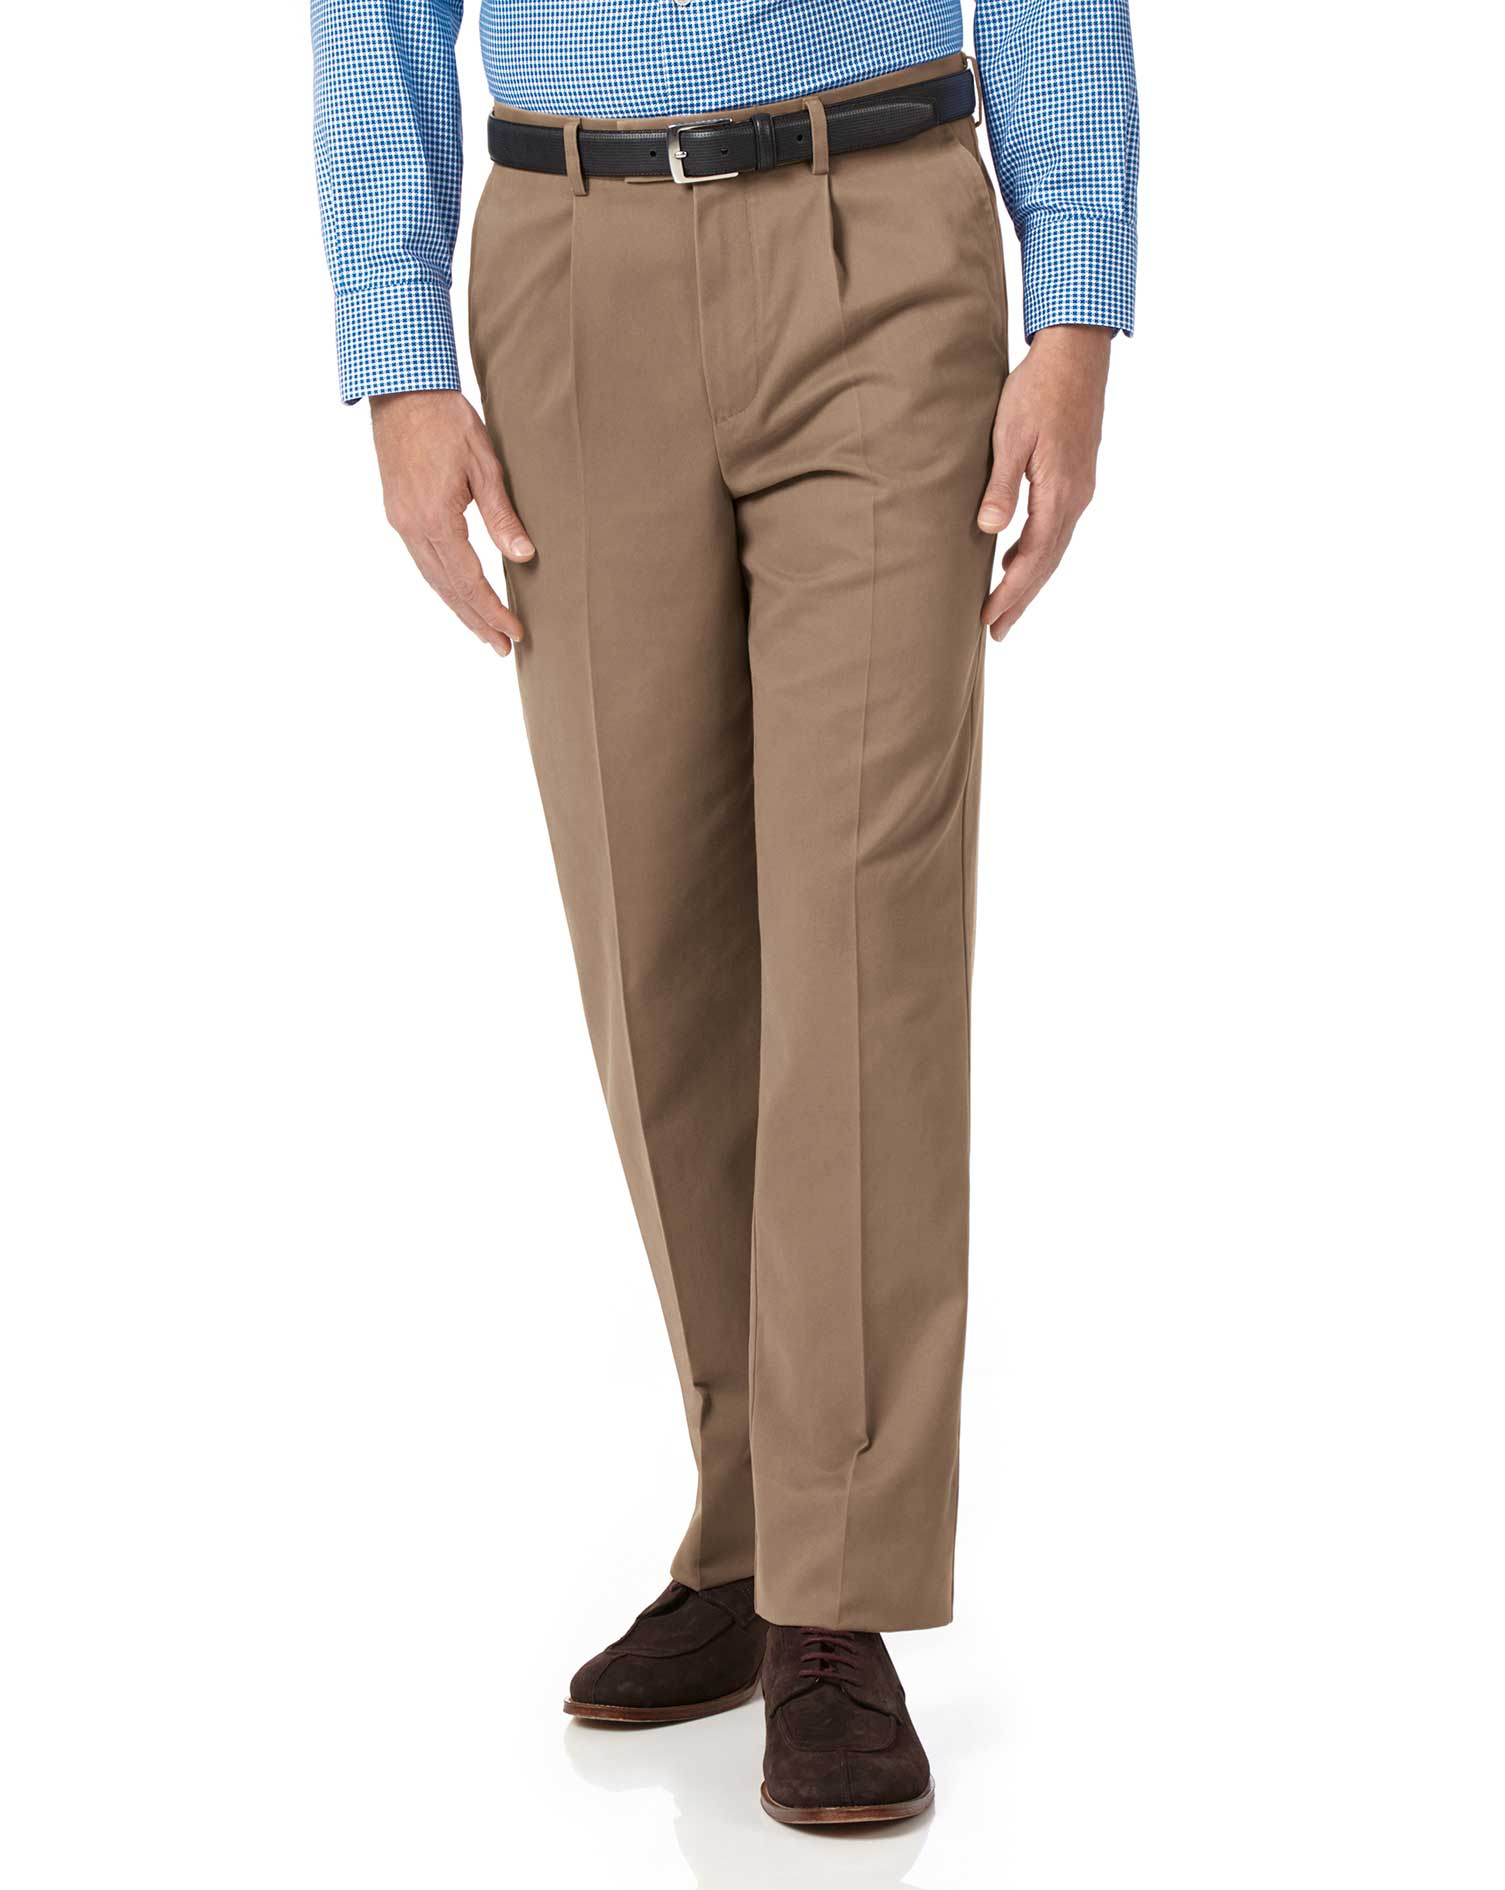 Tan Classic Fit Single Pleat Non-Iron Cotton Chino Trousers Size W40 L34 by Charles Tyrwhitt